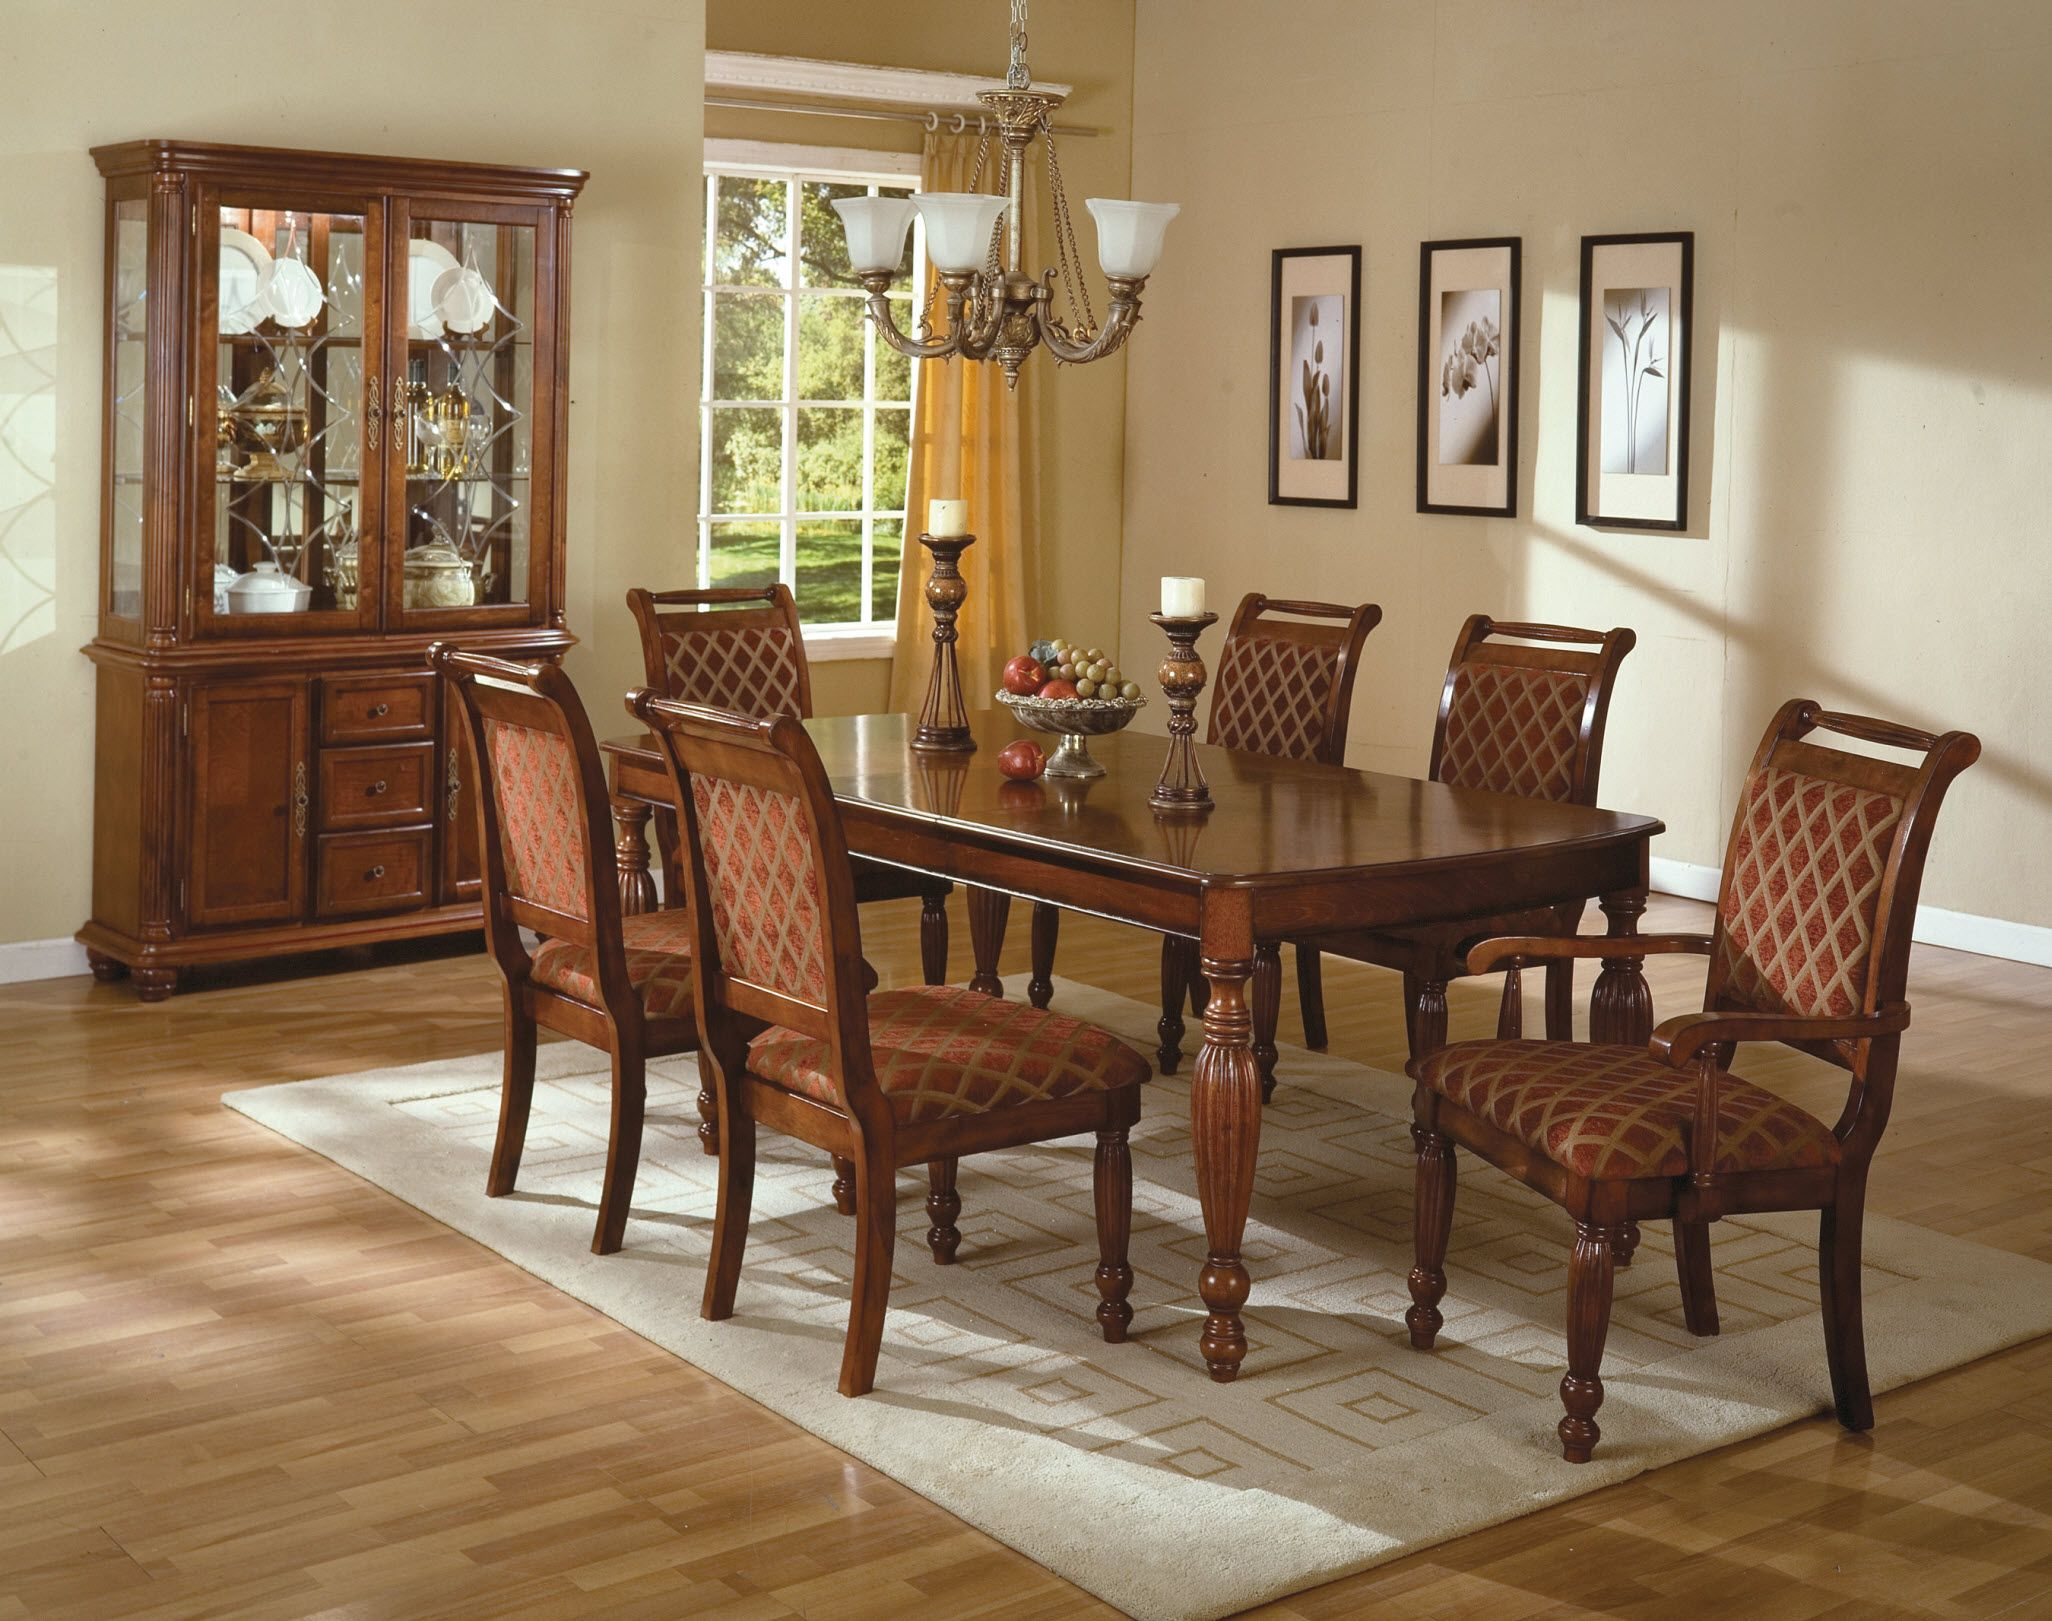 Wooden dining chairs with cushion - 17 Dining Room Decoration Ideas17 Dining Room Decoration Ideas Furniture Rooms Furniture And